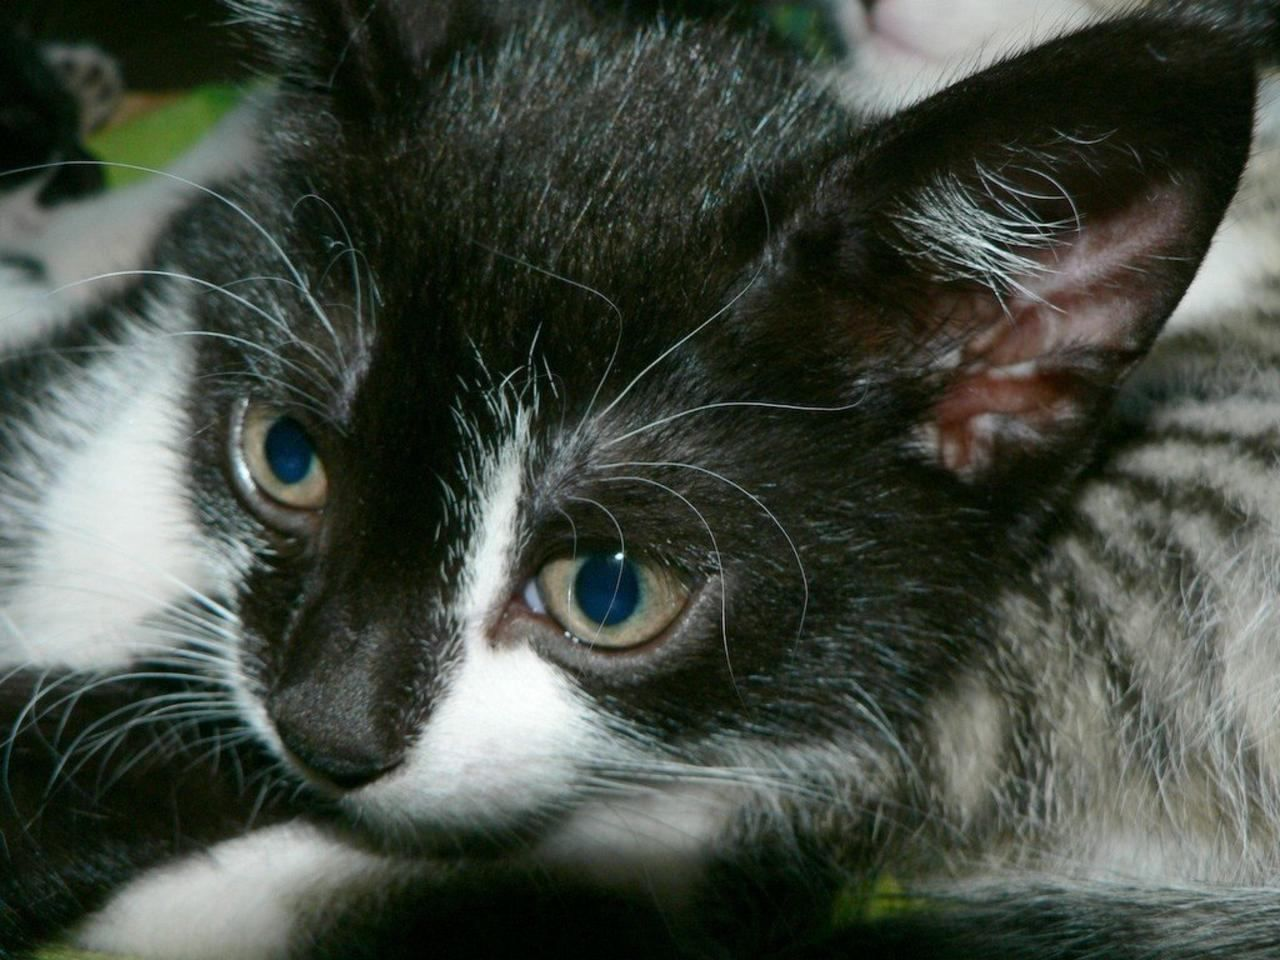 Close-up of kitten; two siblings visible in the background